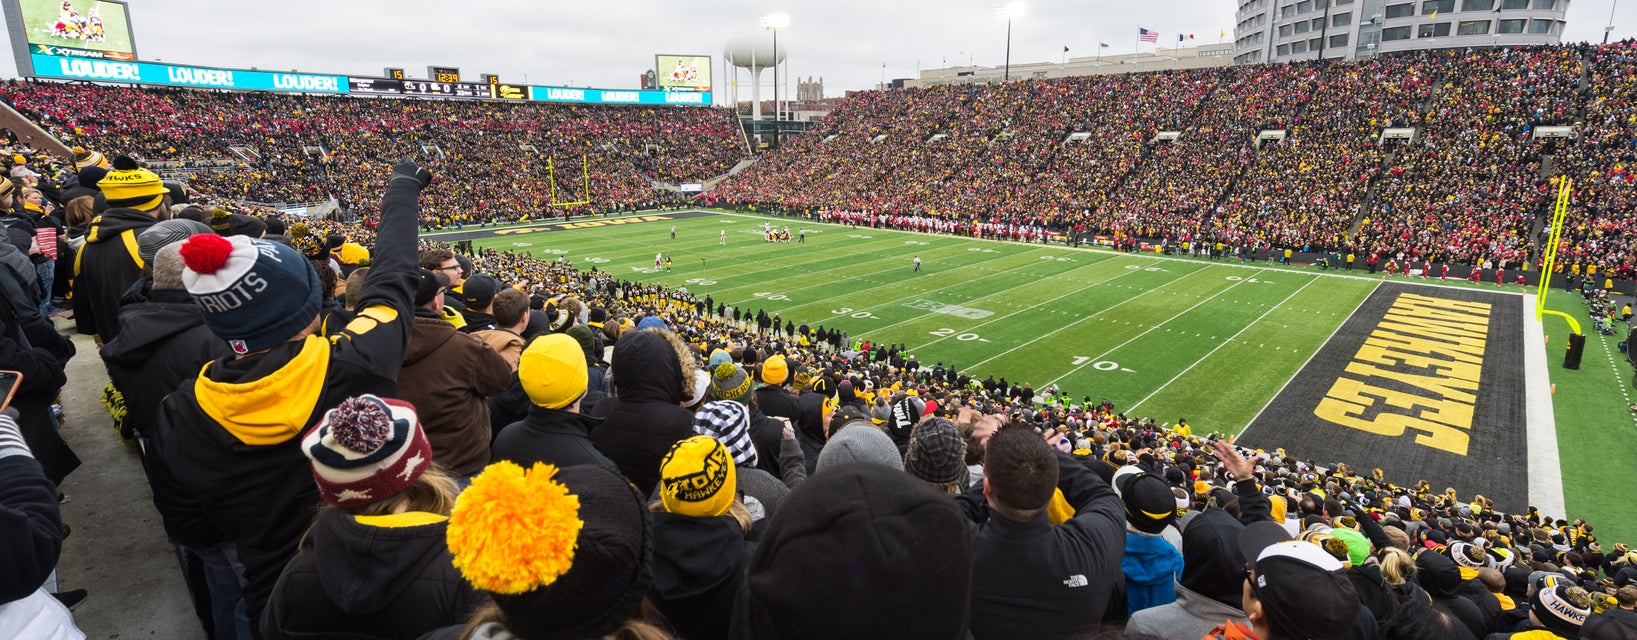 Iowa Football Tickets